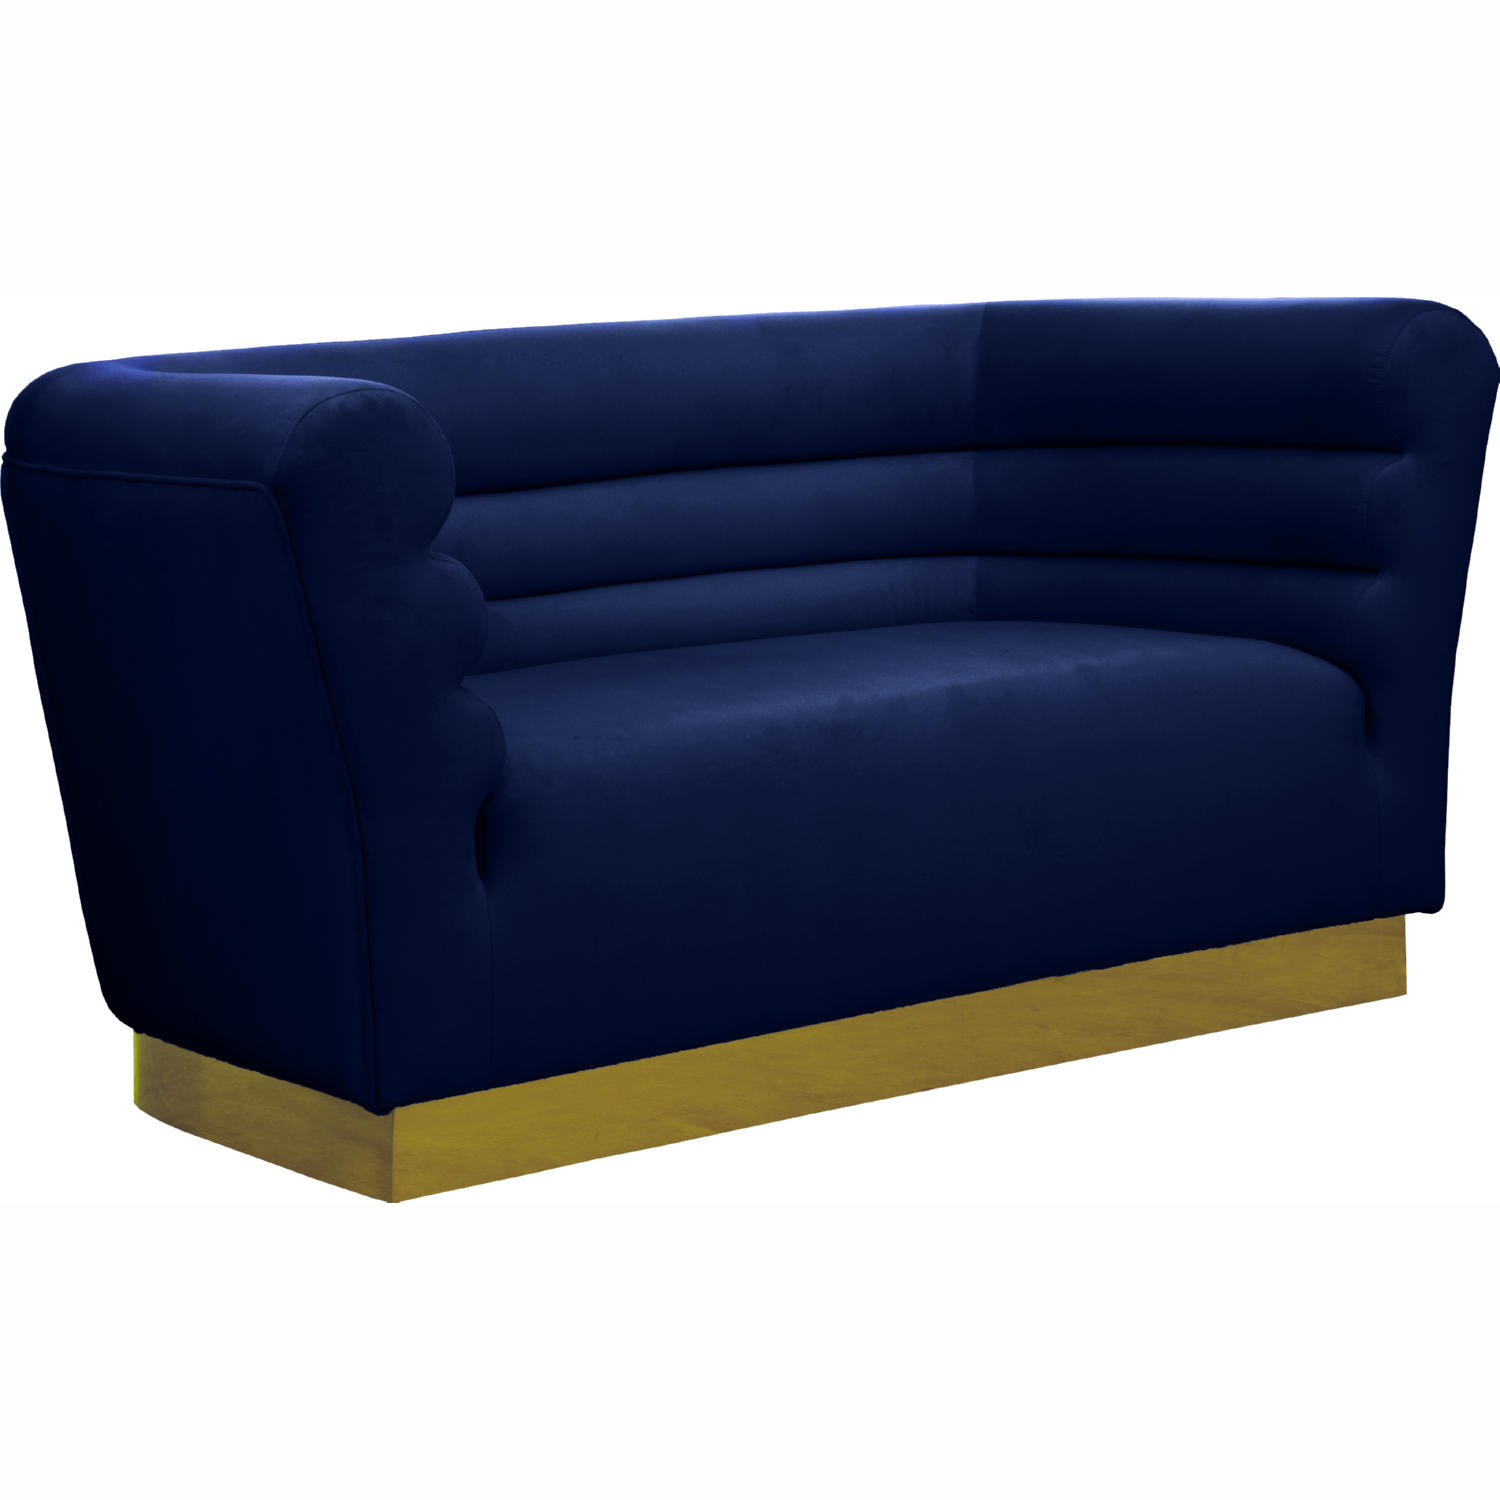 Surprising Bellini Loveseat In Navy Blue Velvet Gold Stainless Steel By Meridian Furniture Squirreltailoven Fun Painted Chair Ideas Images Squirreltailovenorg